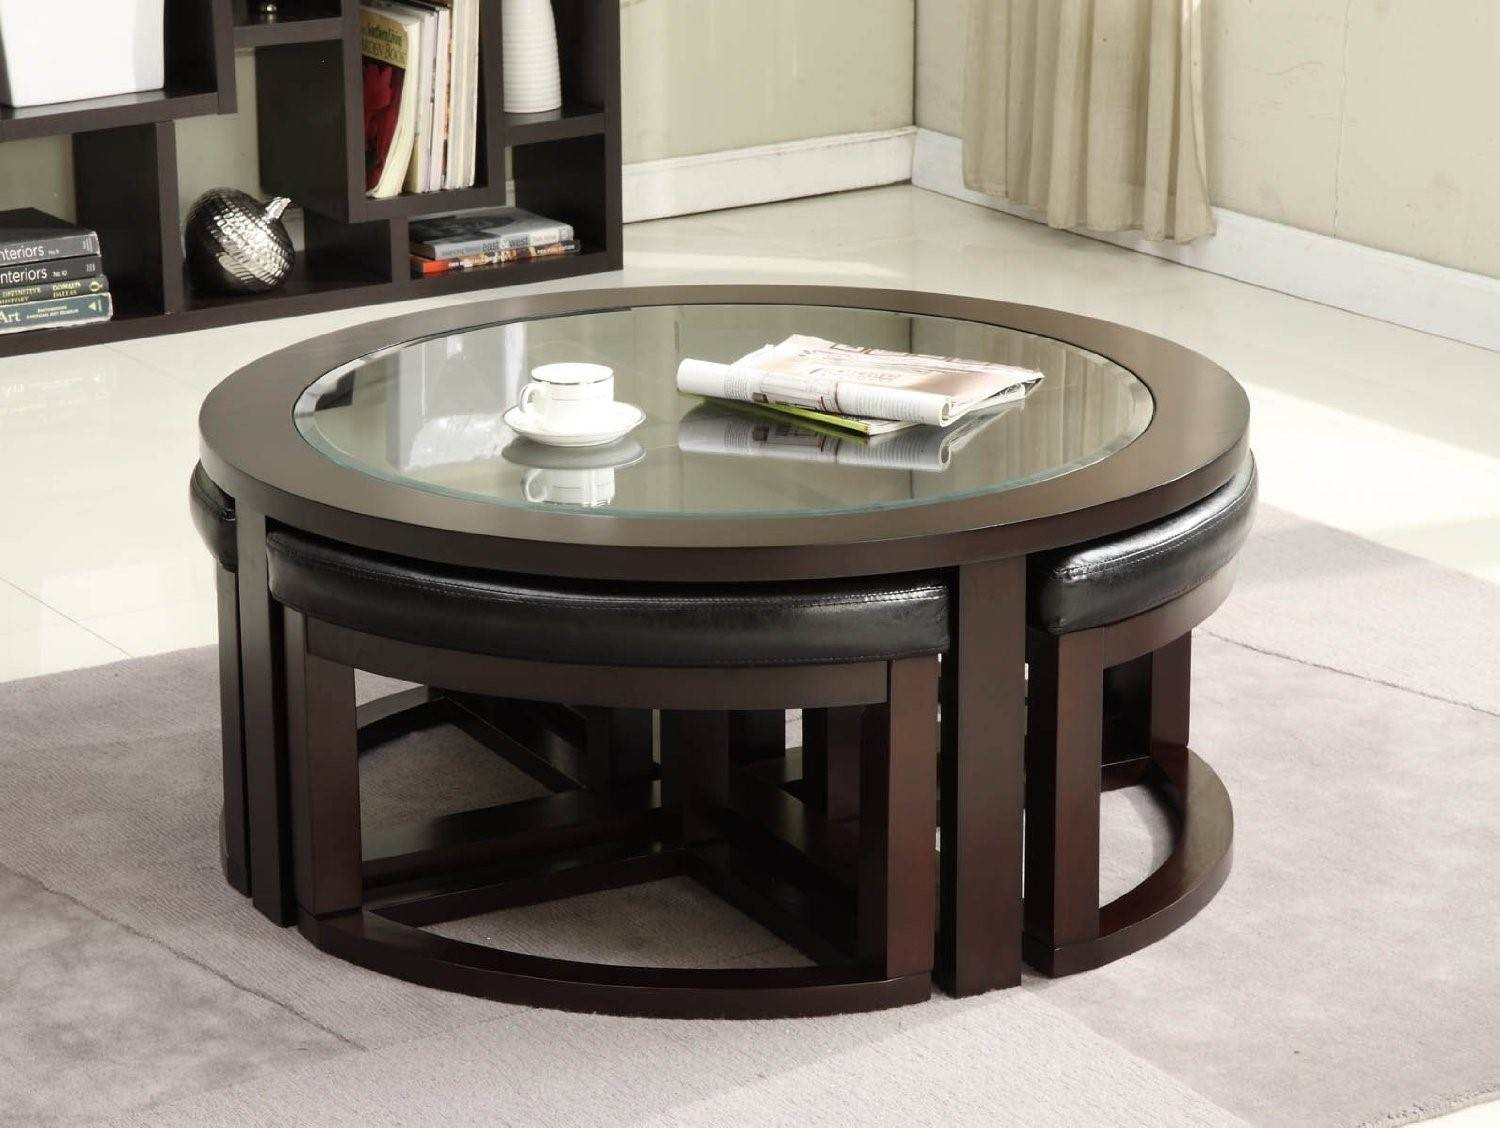 Coffee Tables: Marvelous Coffee Tables With Stools Design Ideas Regarding Coffee Table With Stools (View 10 of 30)